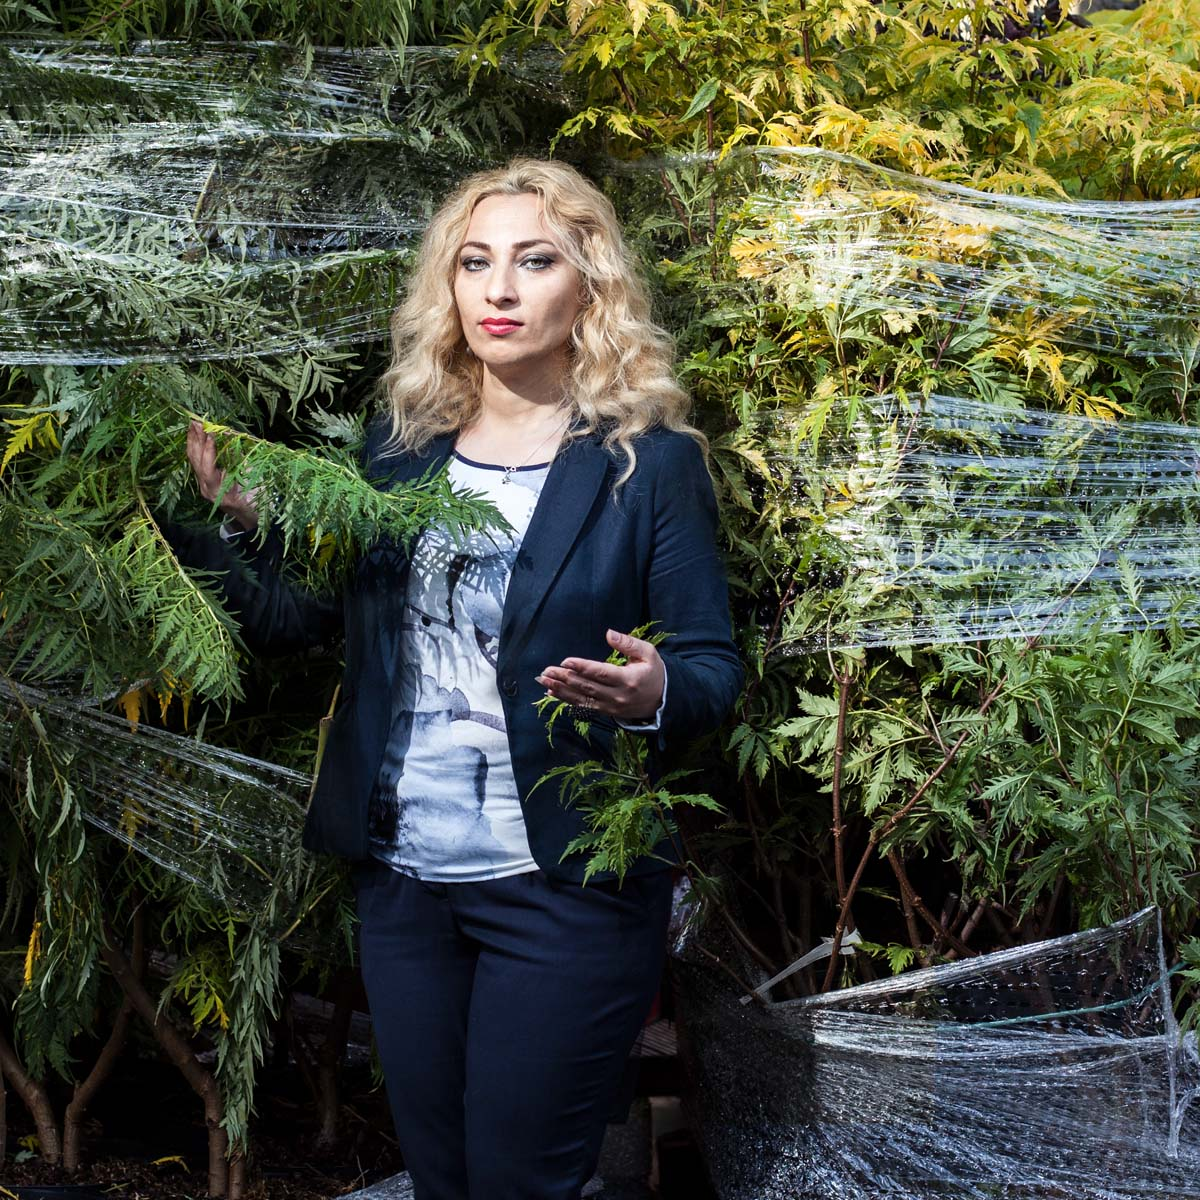 Blond immigrant woman standing in bushes